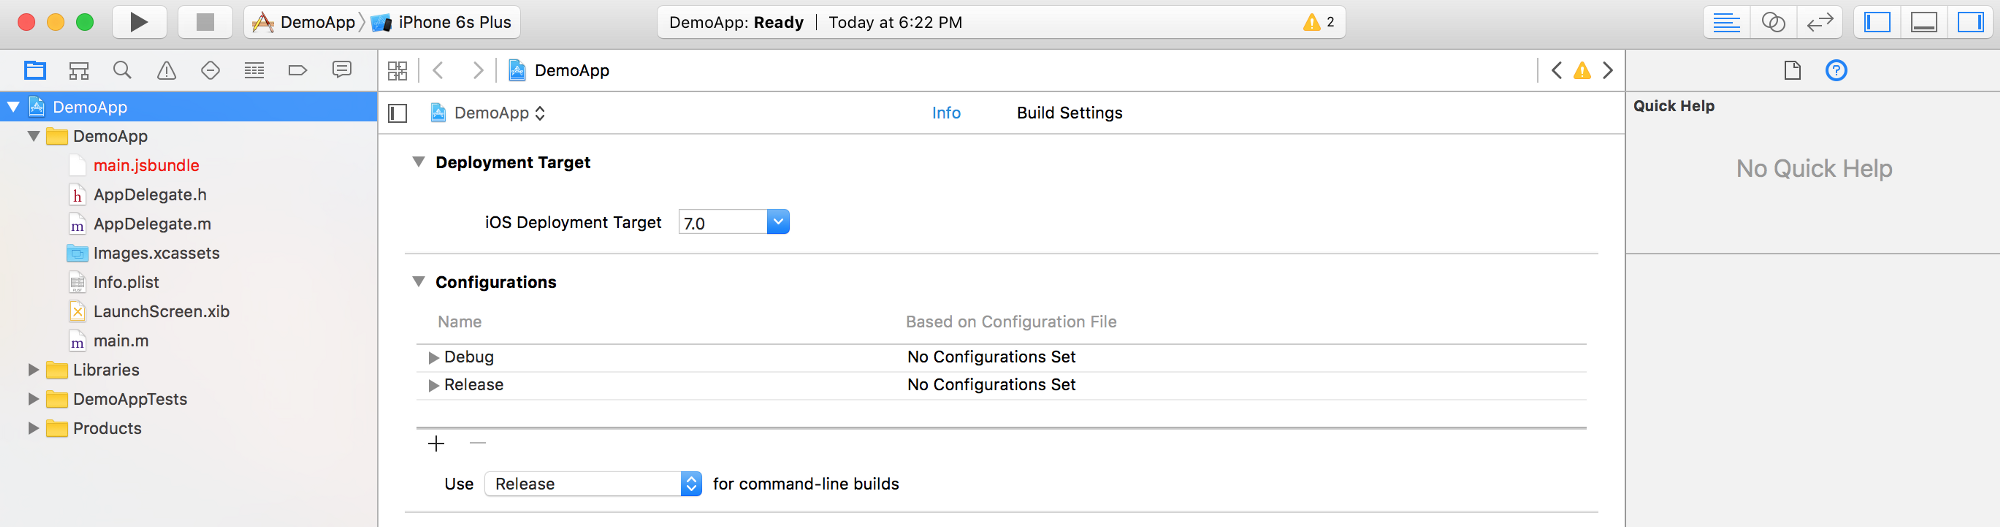 How To Set Up Multiple Schemes Configurations In Xcode For Your This Is The Basic Configuration Put Switch A If You Have Only 1 React Native Ios App